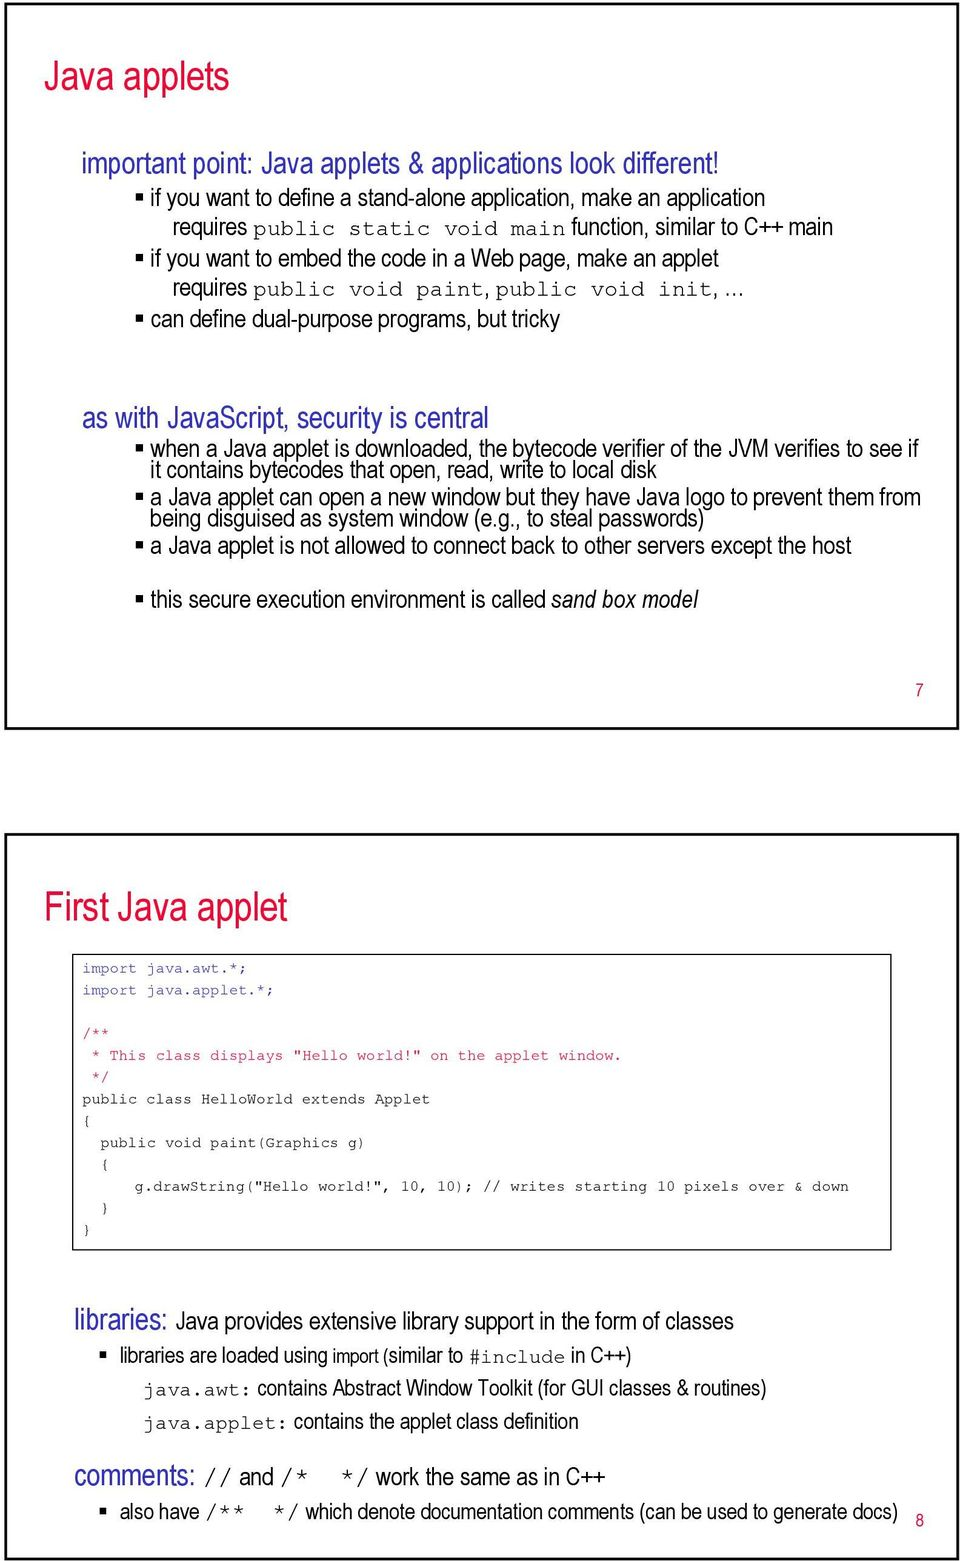 requires public void paint, public void init, can define dual-purpose programs, but tricky as with JavaScript, security is central when a Java applet is downloaded, the bytecode verifier of the JVM